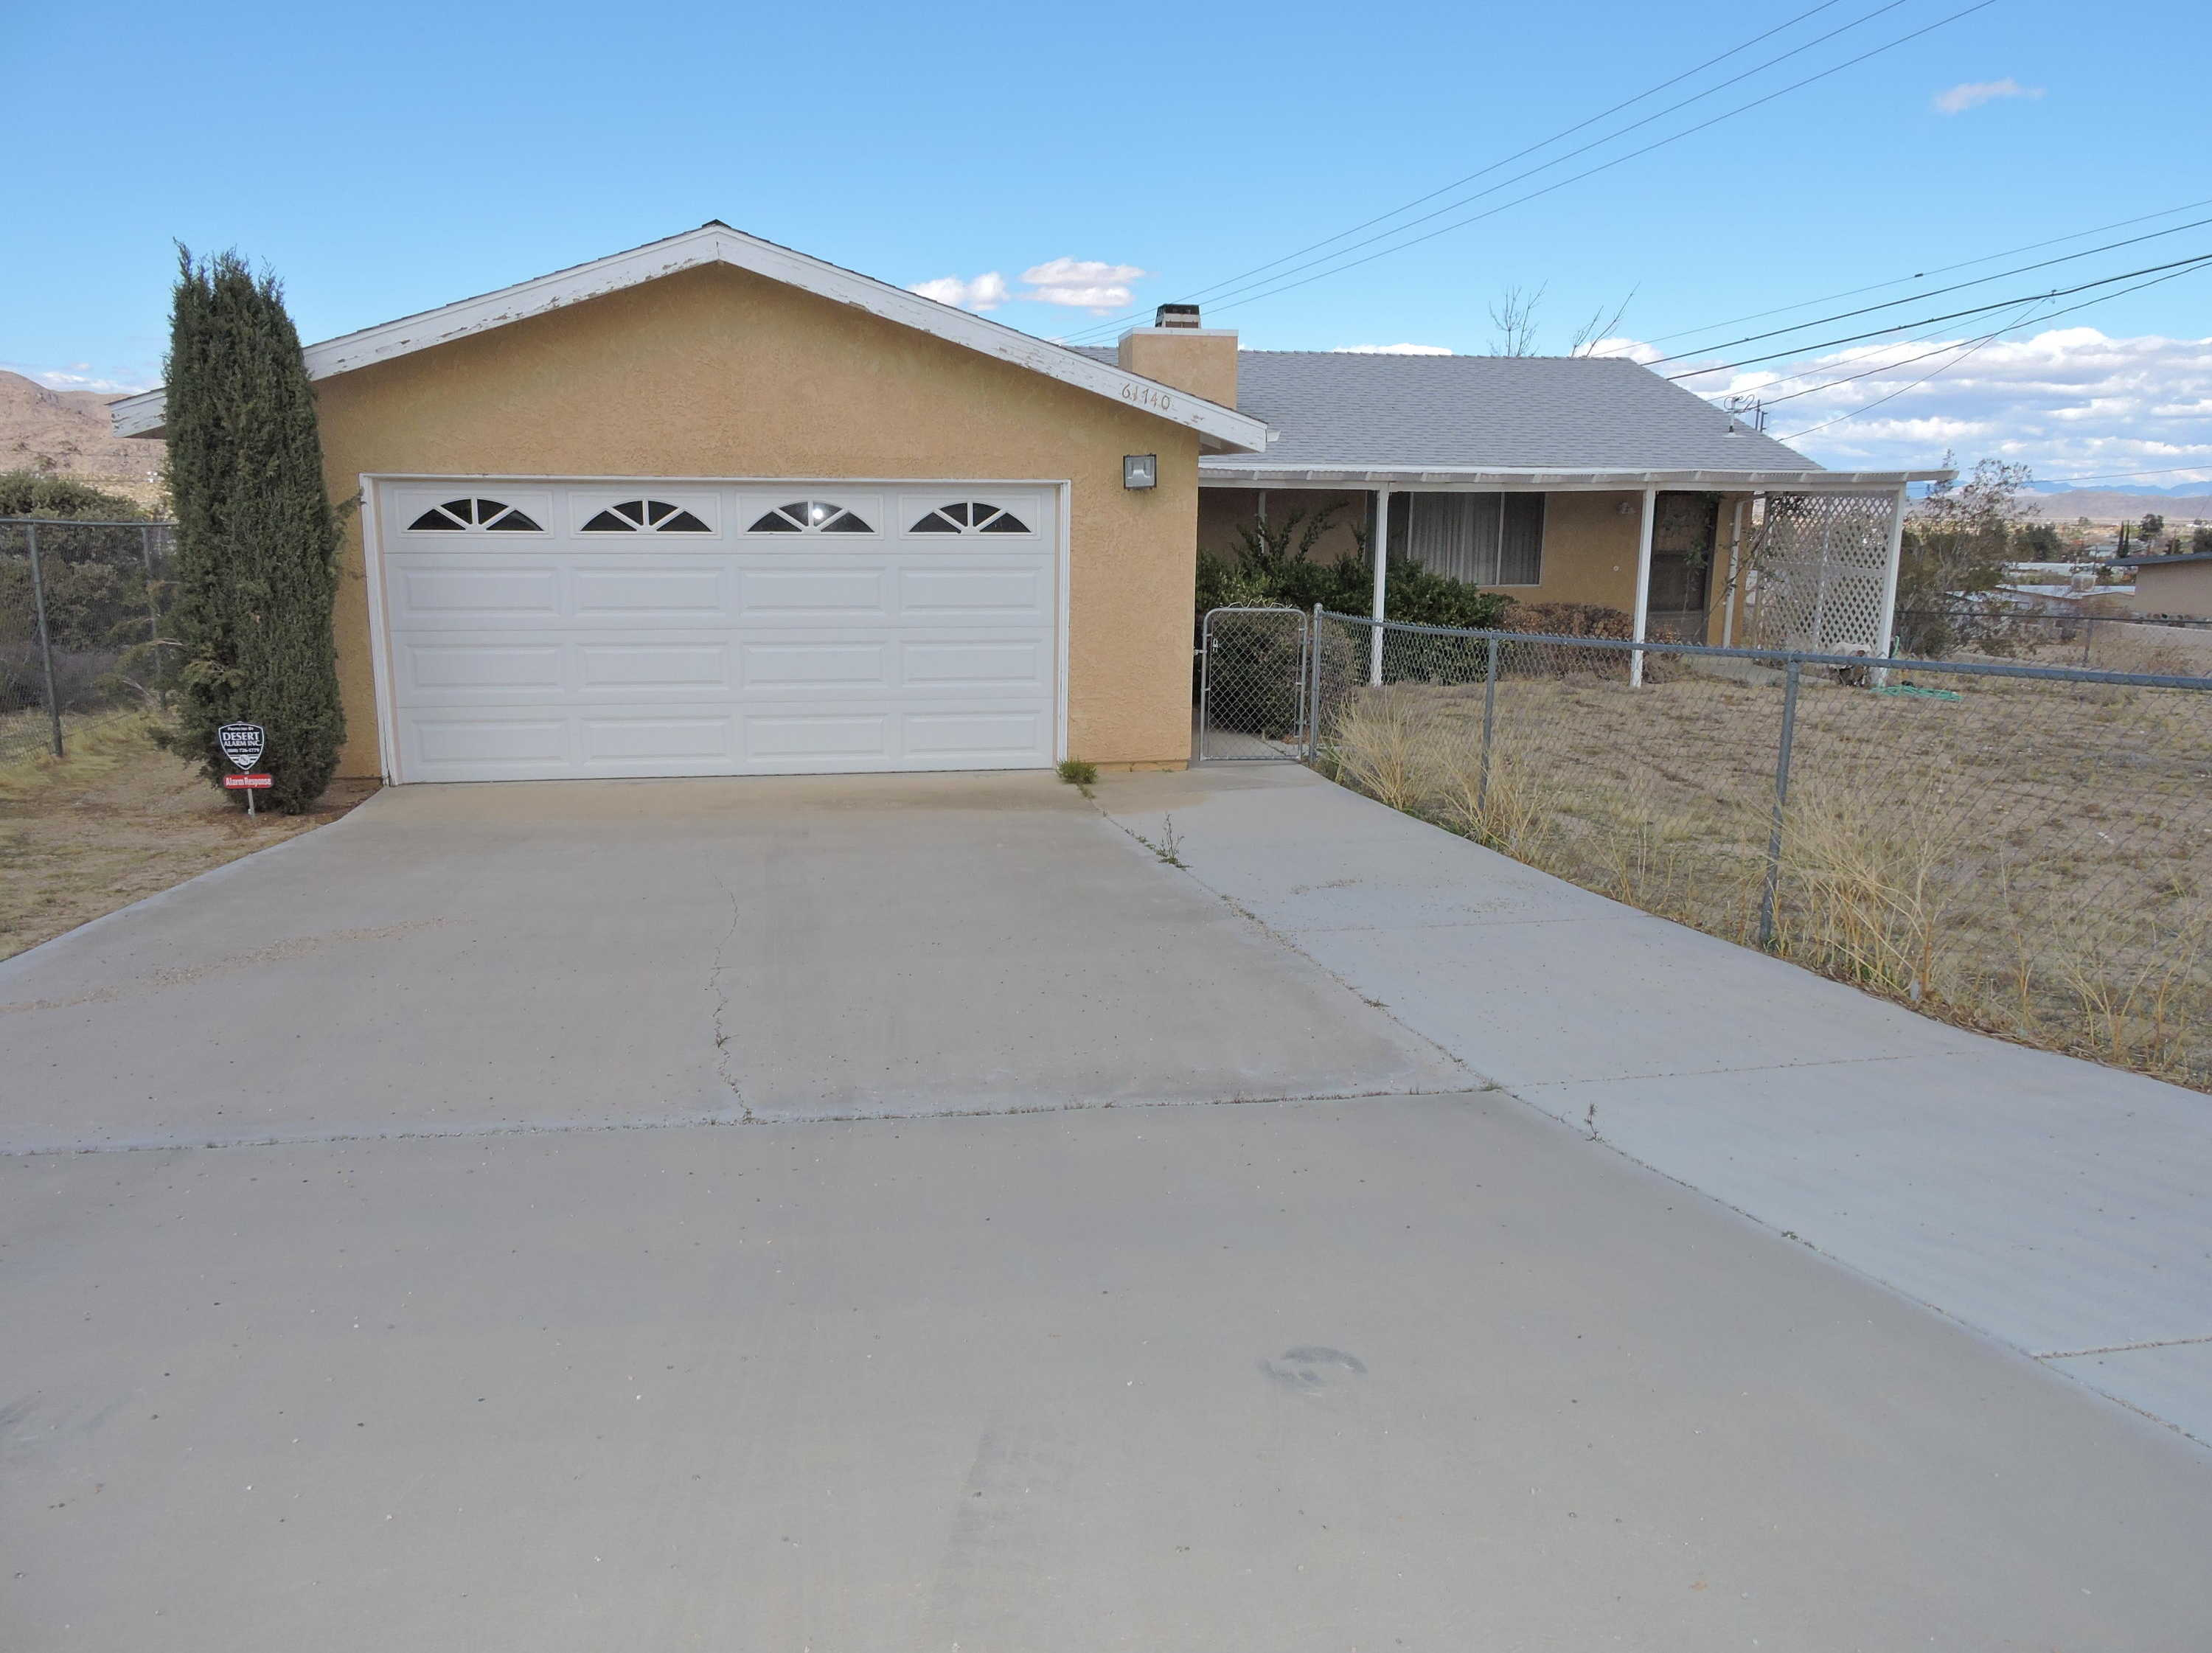 $220,000 - 3Br/2Ba -  for Sale in Not Applicable, Joshua Tree